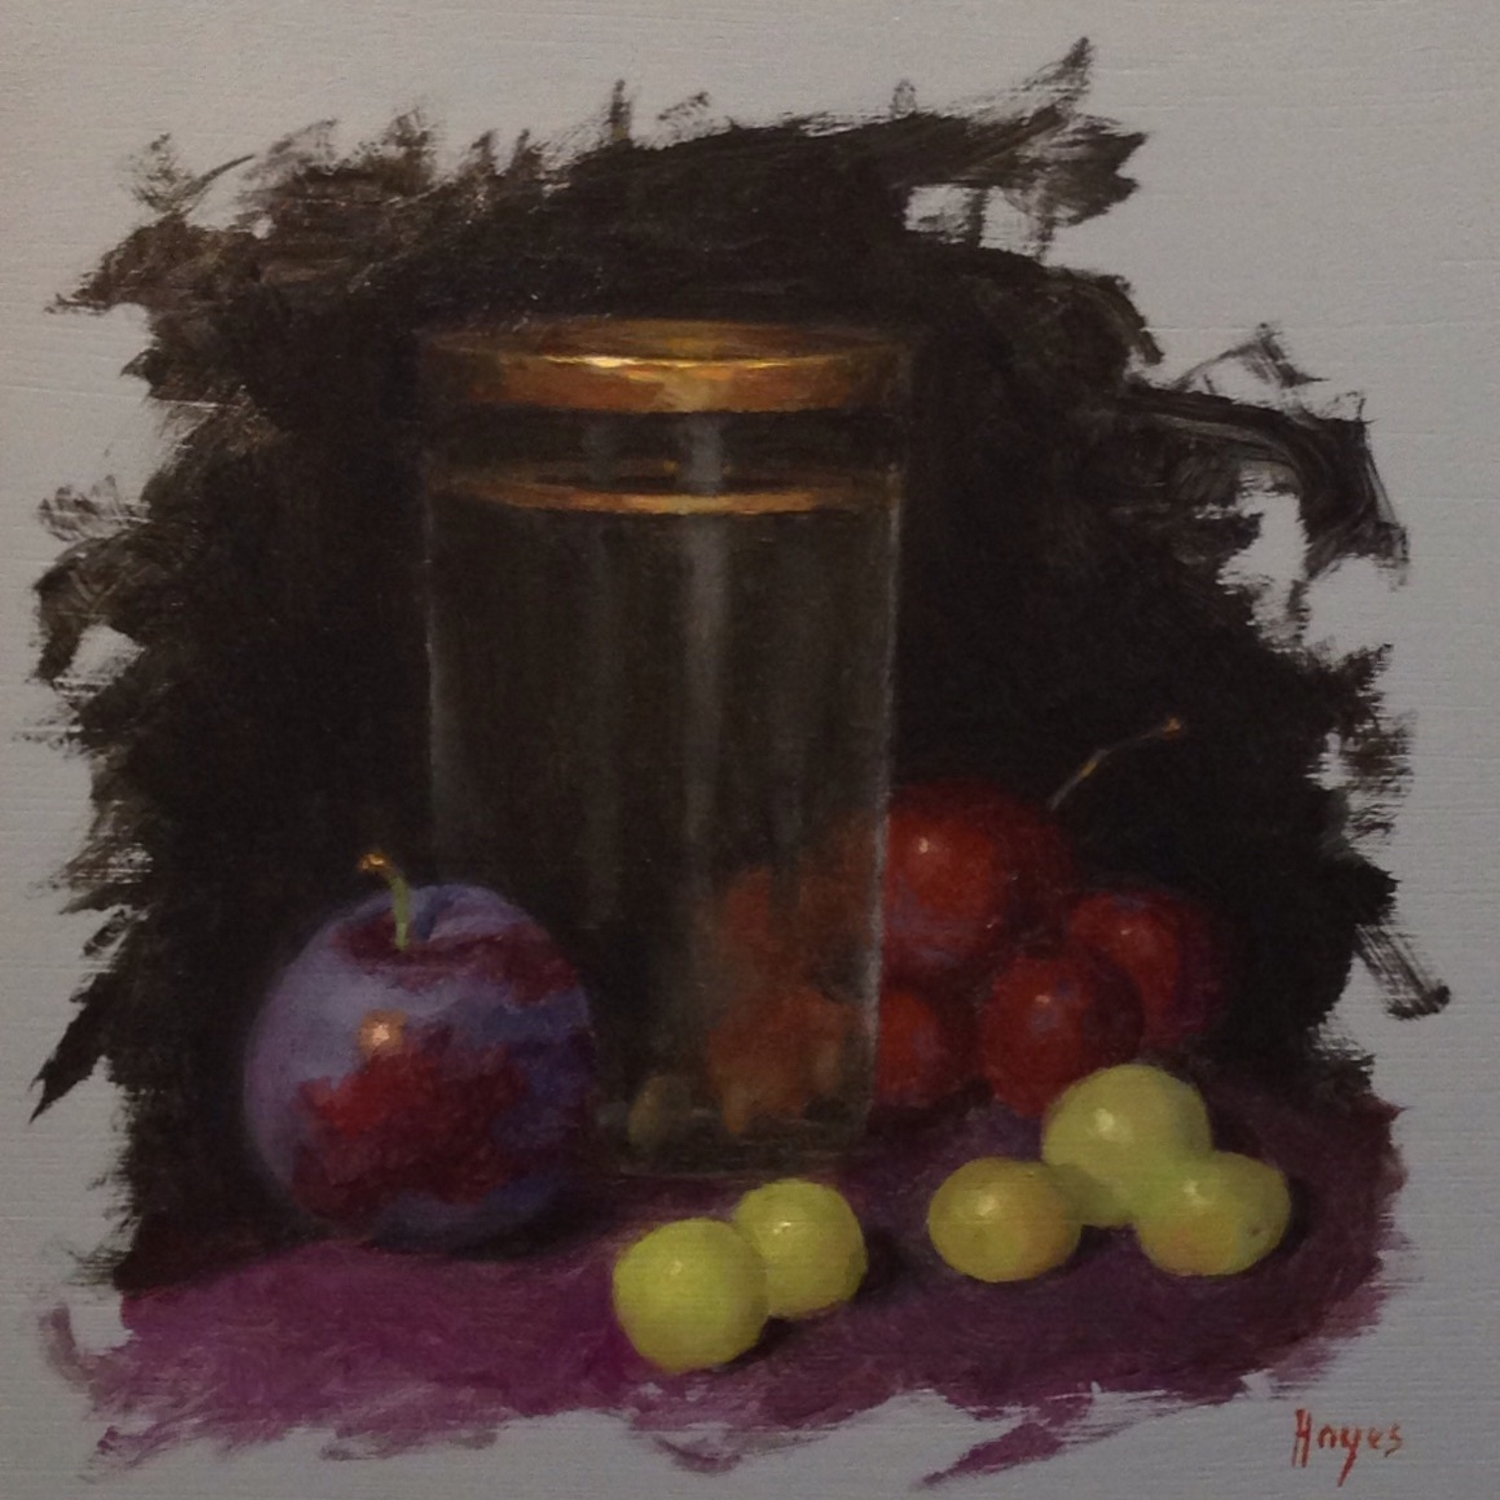 Jeffrey Hayes: Still Life Painting: Oil Painting: Grapes, Plum, Water Glass